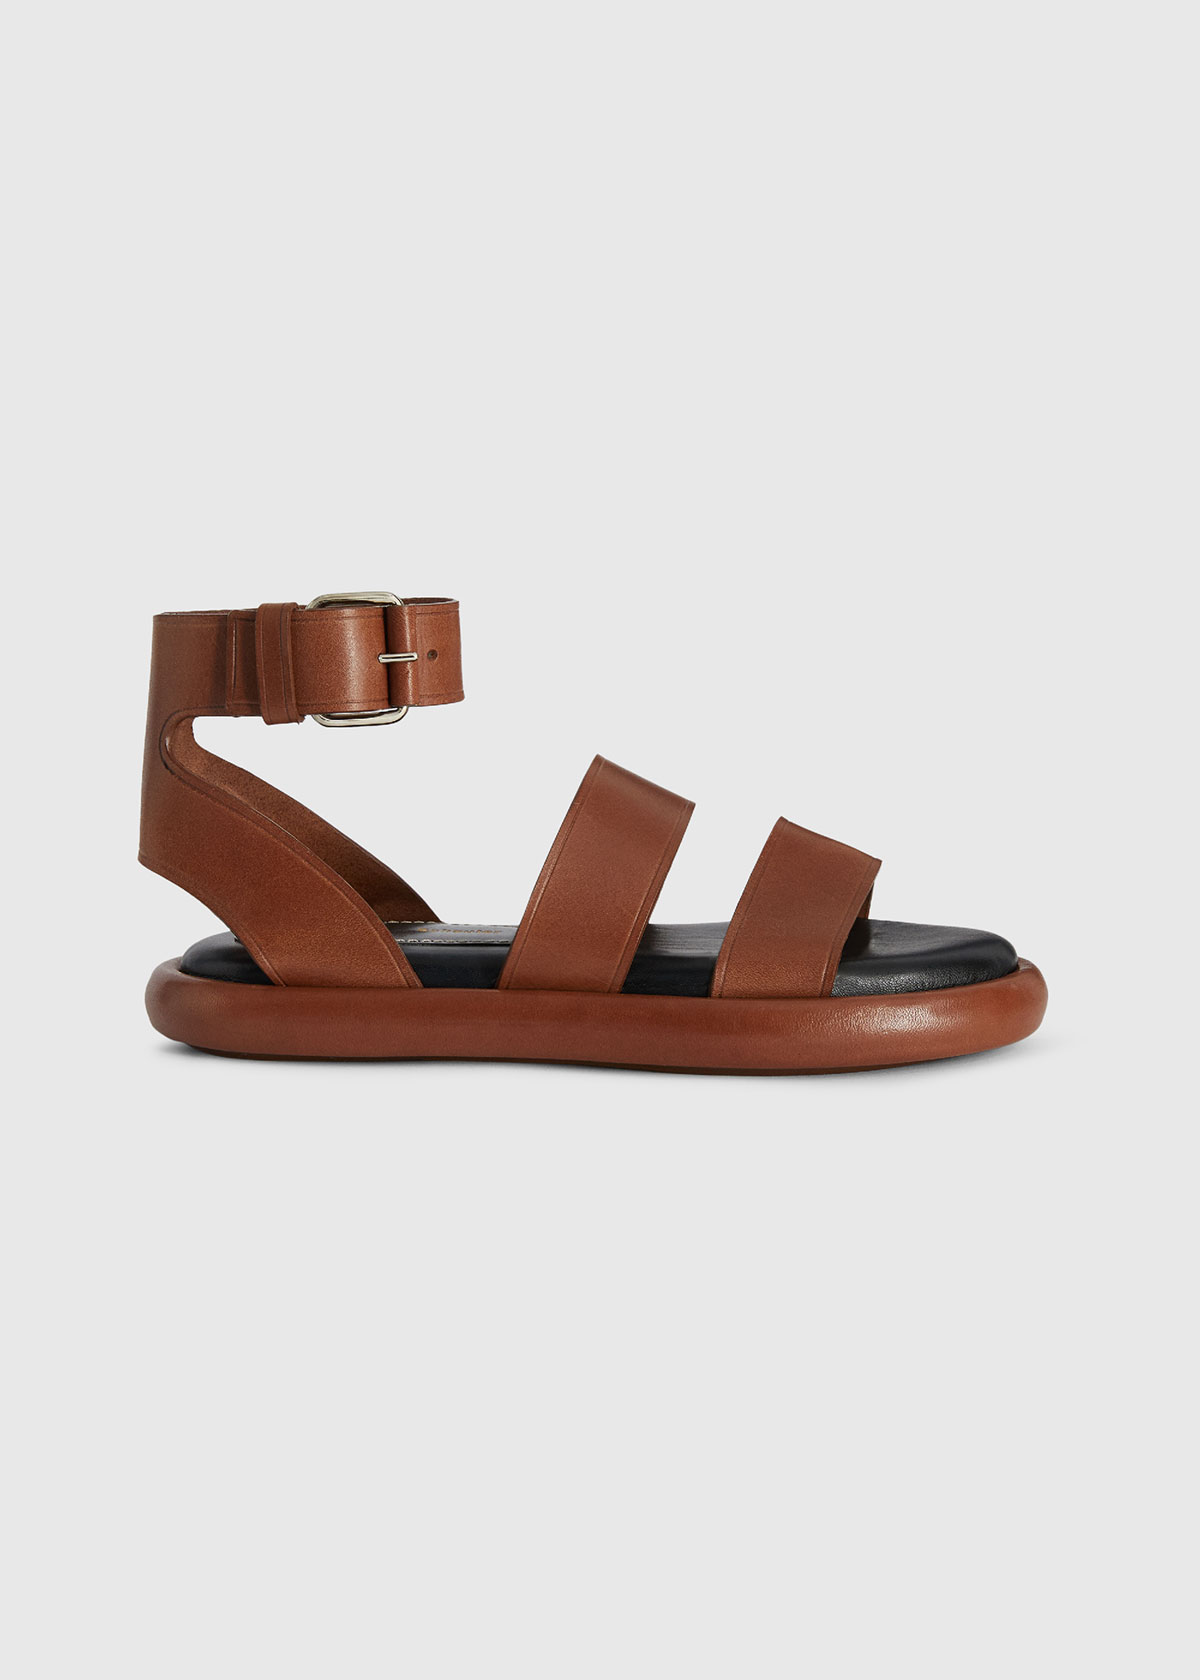 Proenza Schouler Leathers PIPE LEATHER ANKLE-STRAP FLAT SANDALS